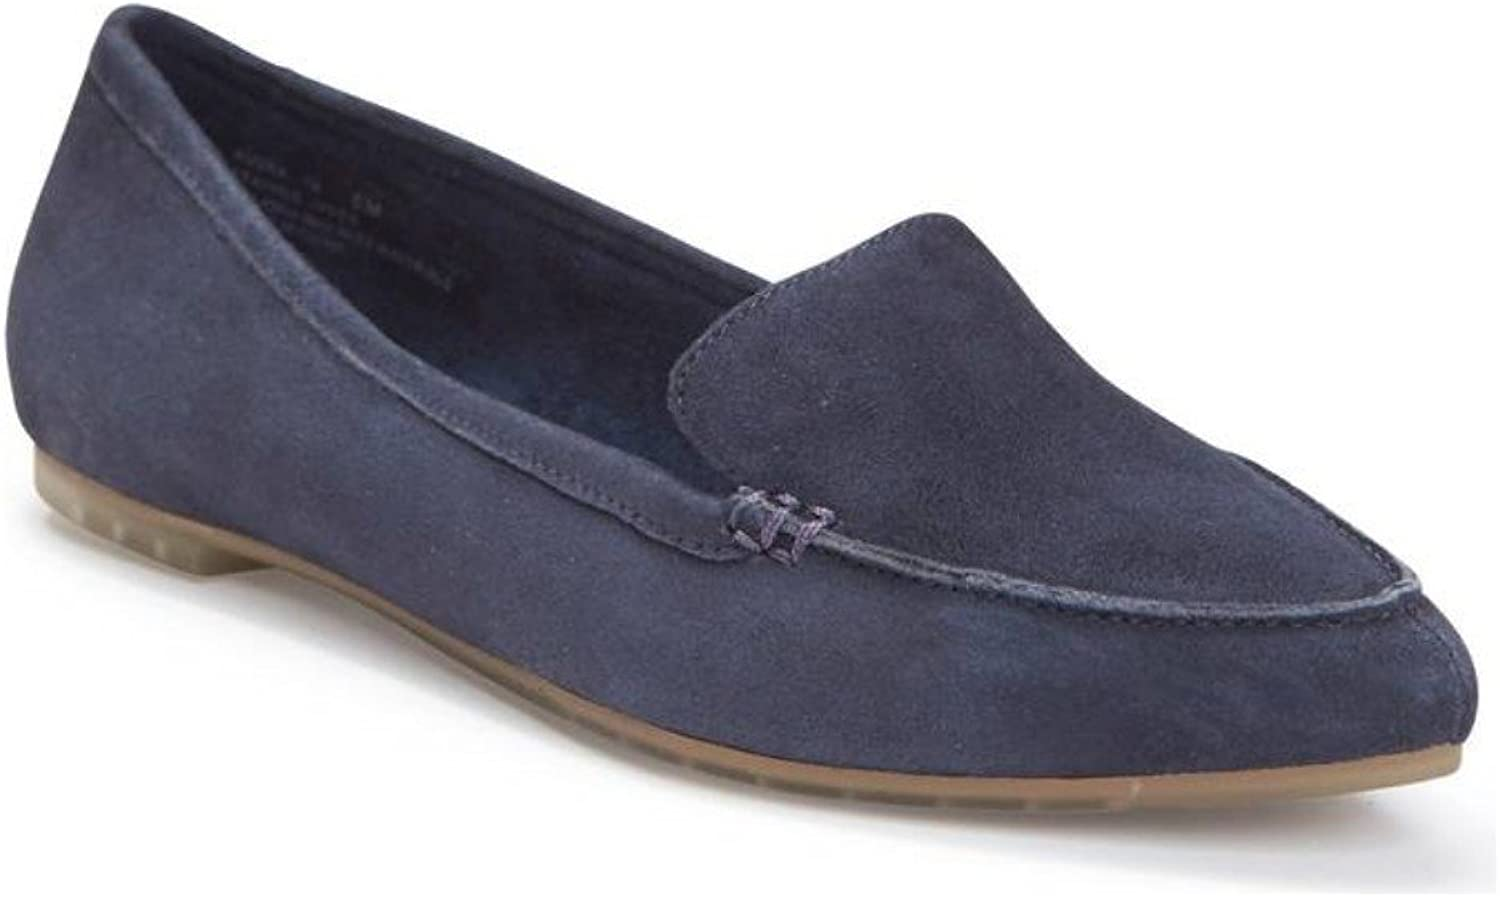 Me Too Audra - Dark Navy Suede Pointed Toe Loafer